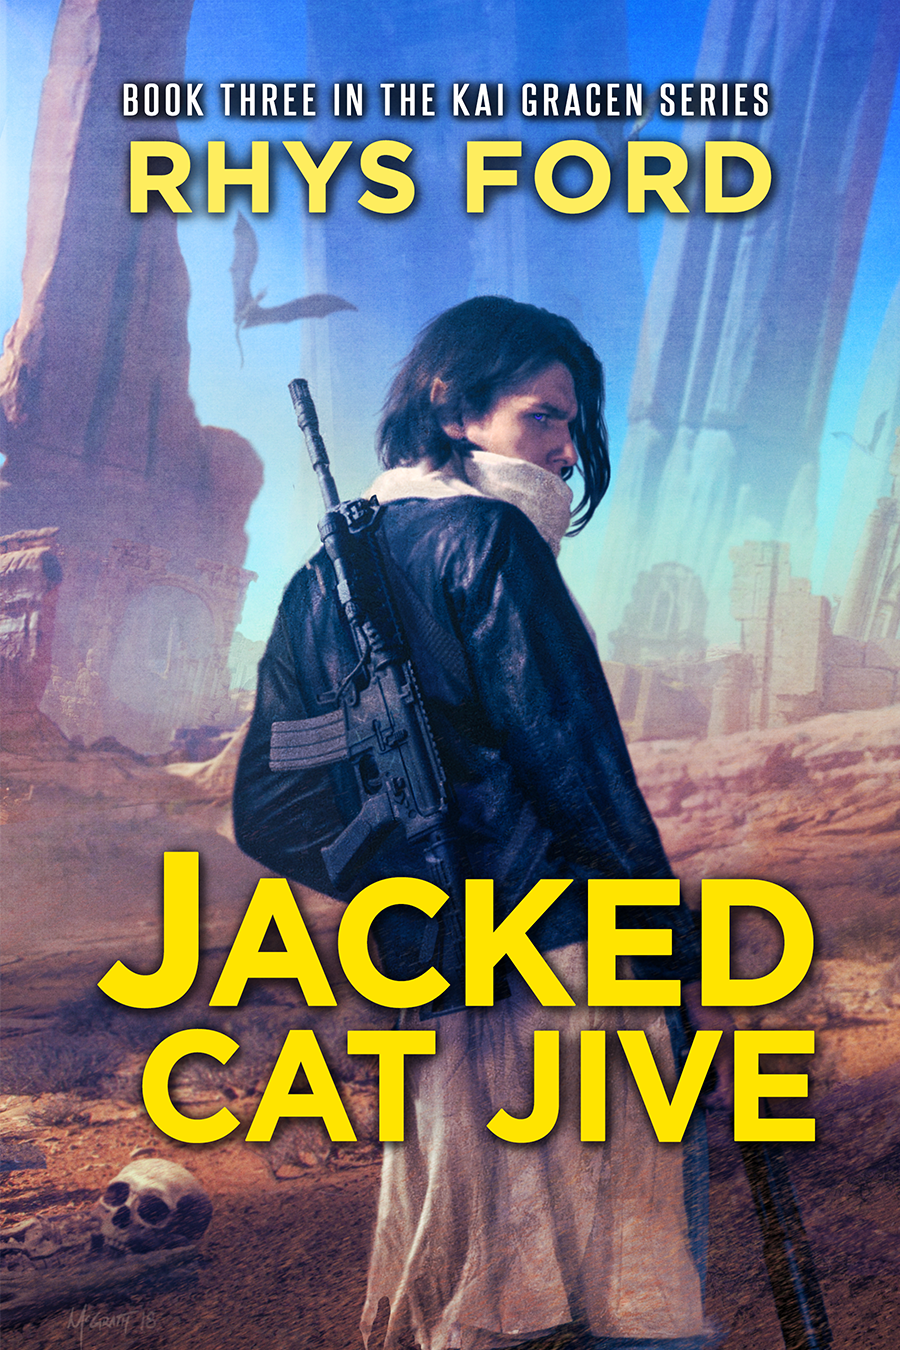 Guest Post and Giveaway: Jacked Cat Jive by Rhys Ford